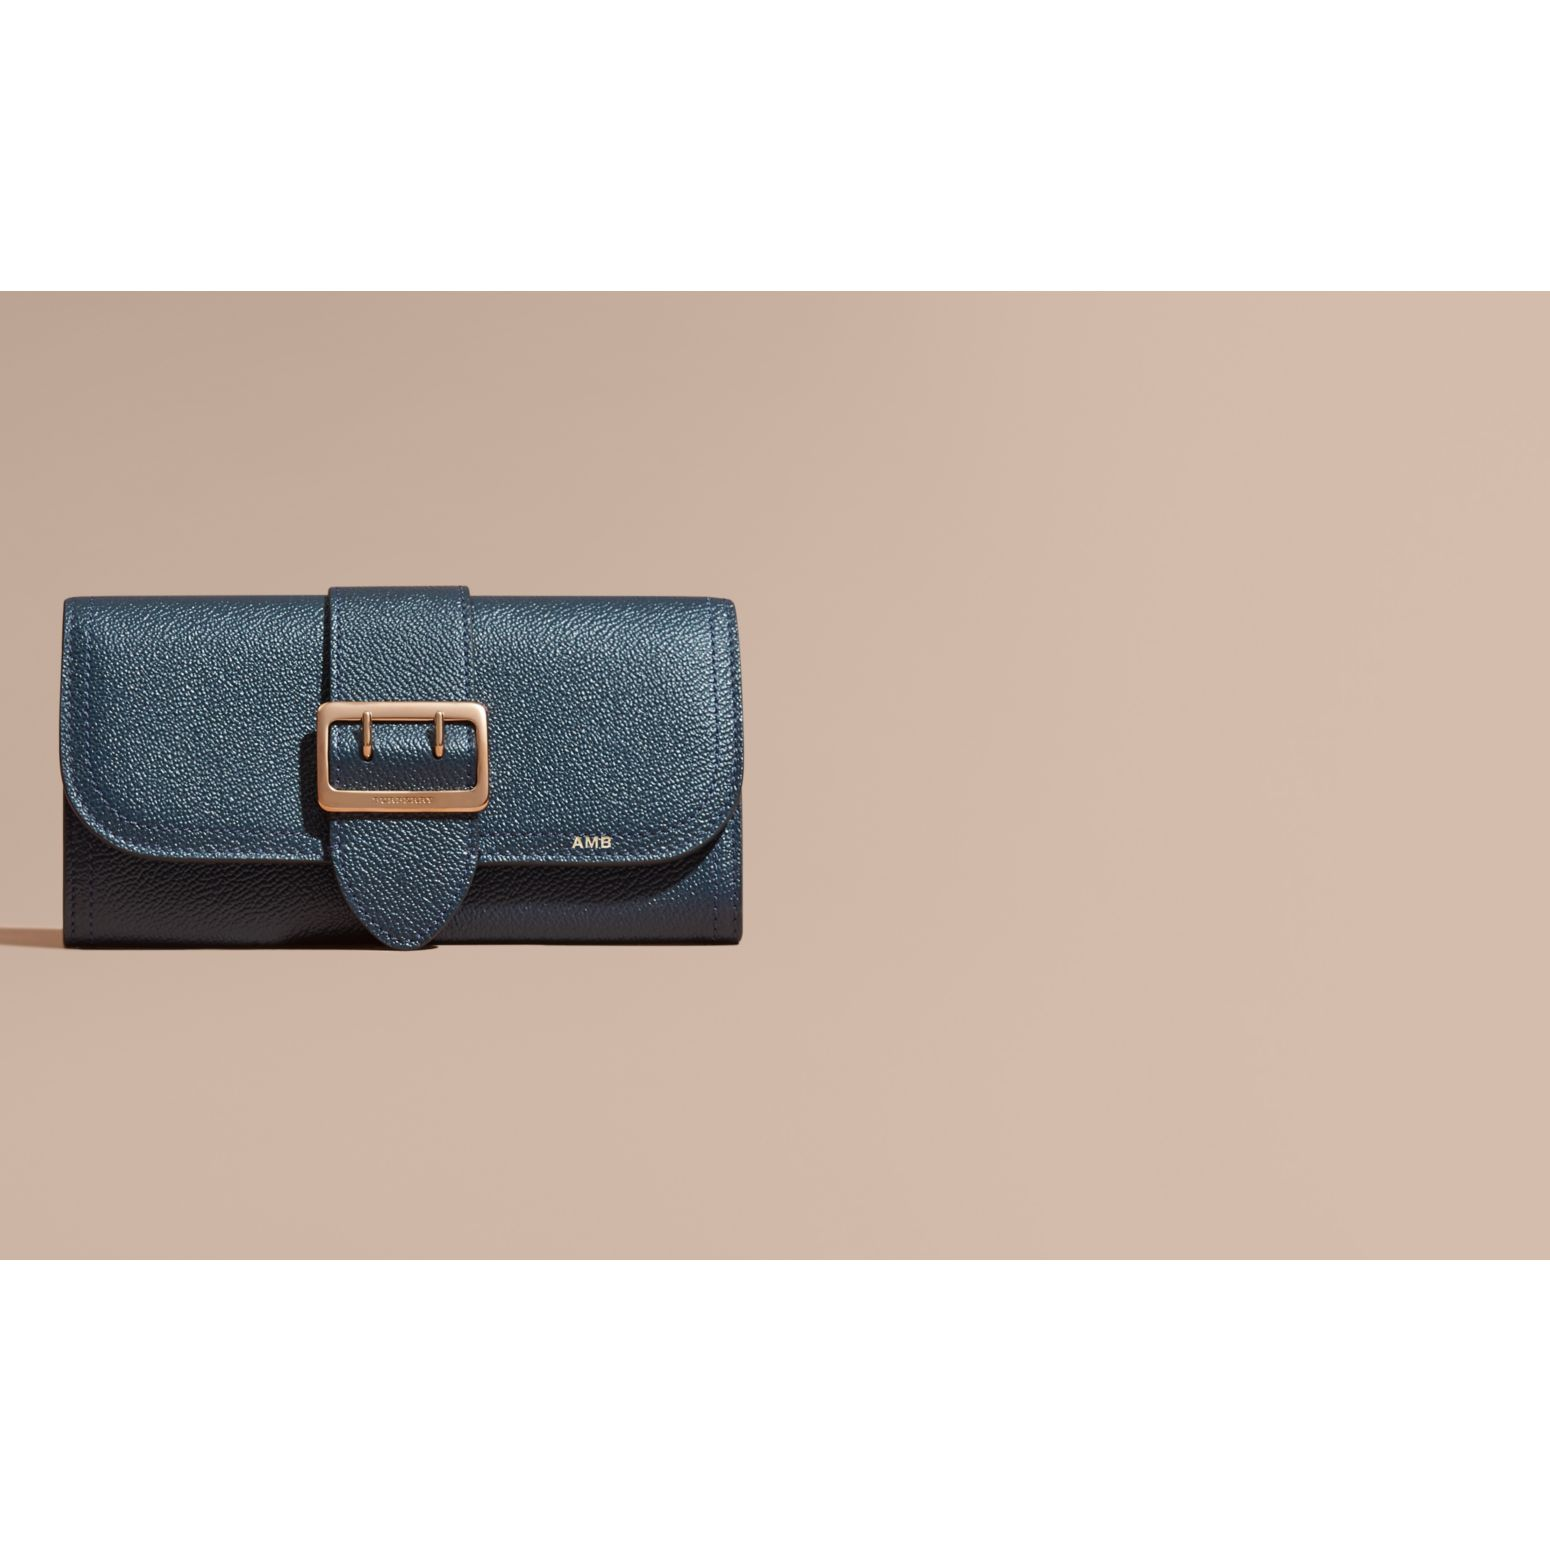 Textured Leather Continental Wallet in Blue Carbon - Women | Burberry Singapore - gallery image 2